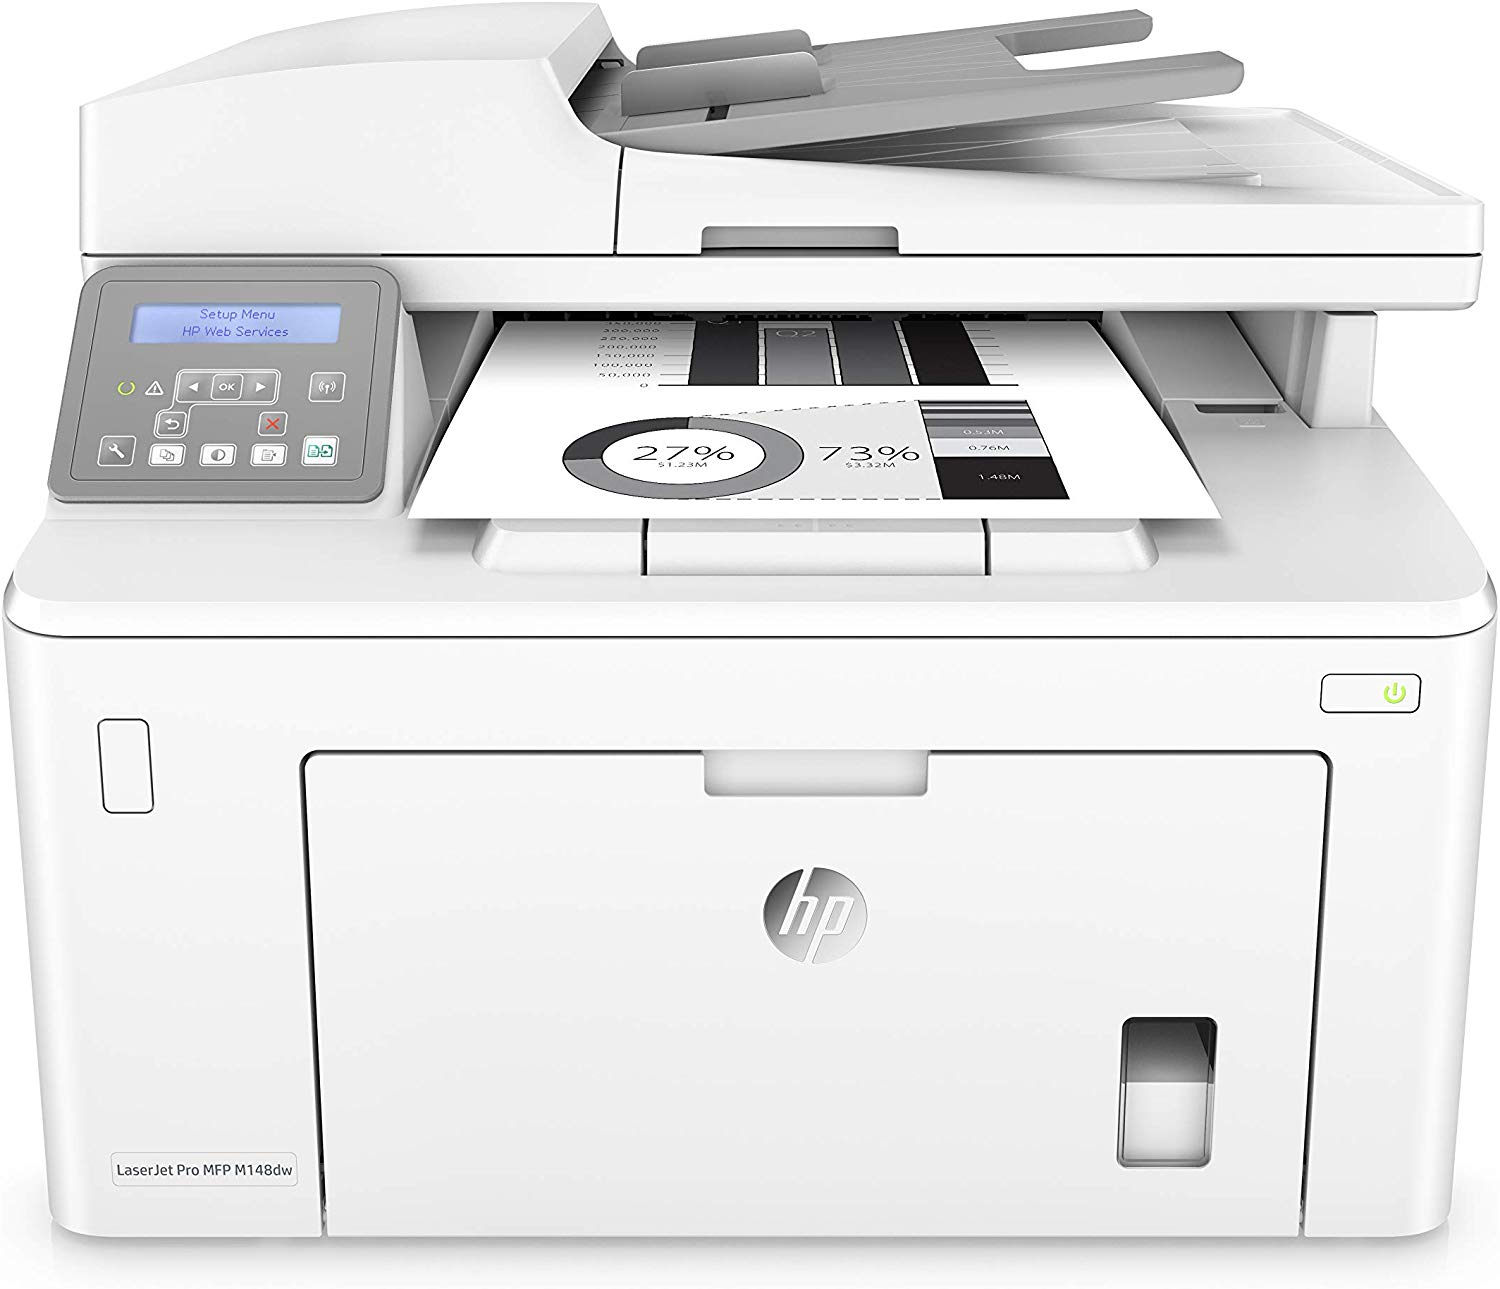 Some Ideas on Printer Scanner Copier You Should Know